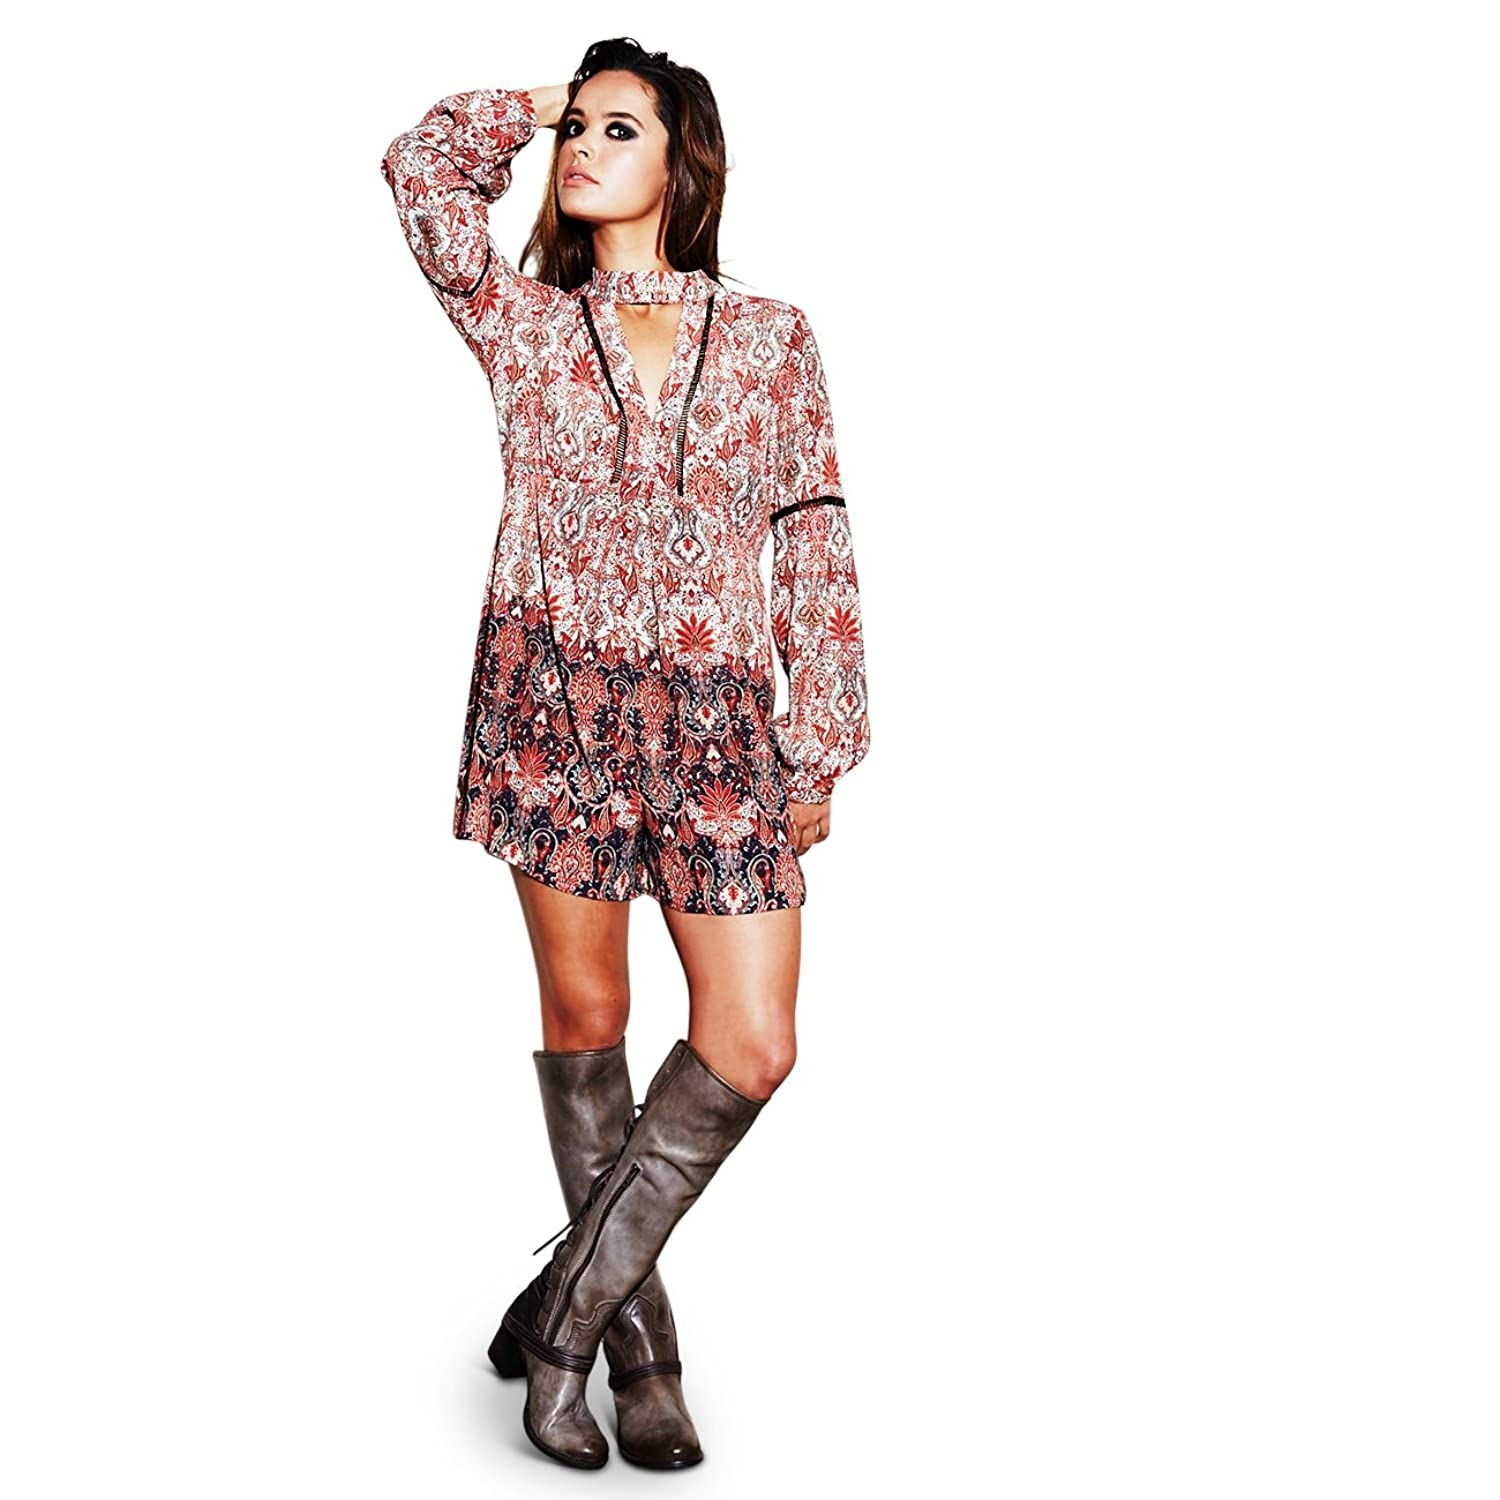 Adelyn Rae Revered' Paisley Printed Romper